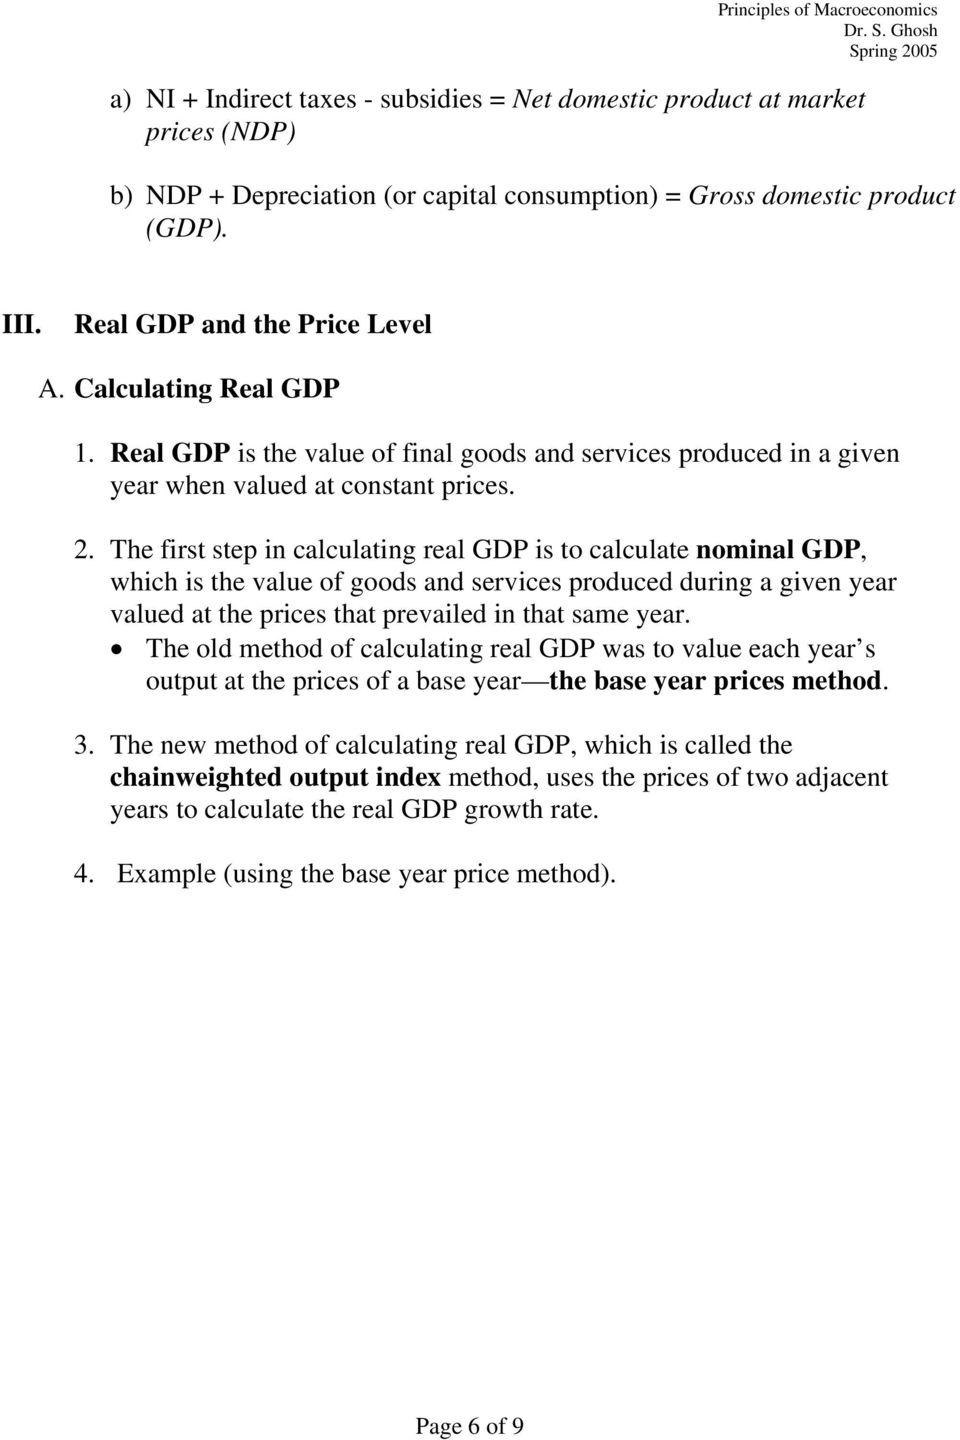 The first step in calculating real GDP is to calculate nominal GDP, which is the value of goods and services produced during a given year valued at the prices that prevailed in that same year.